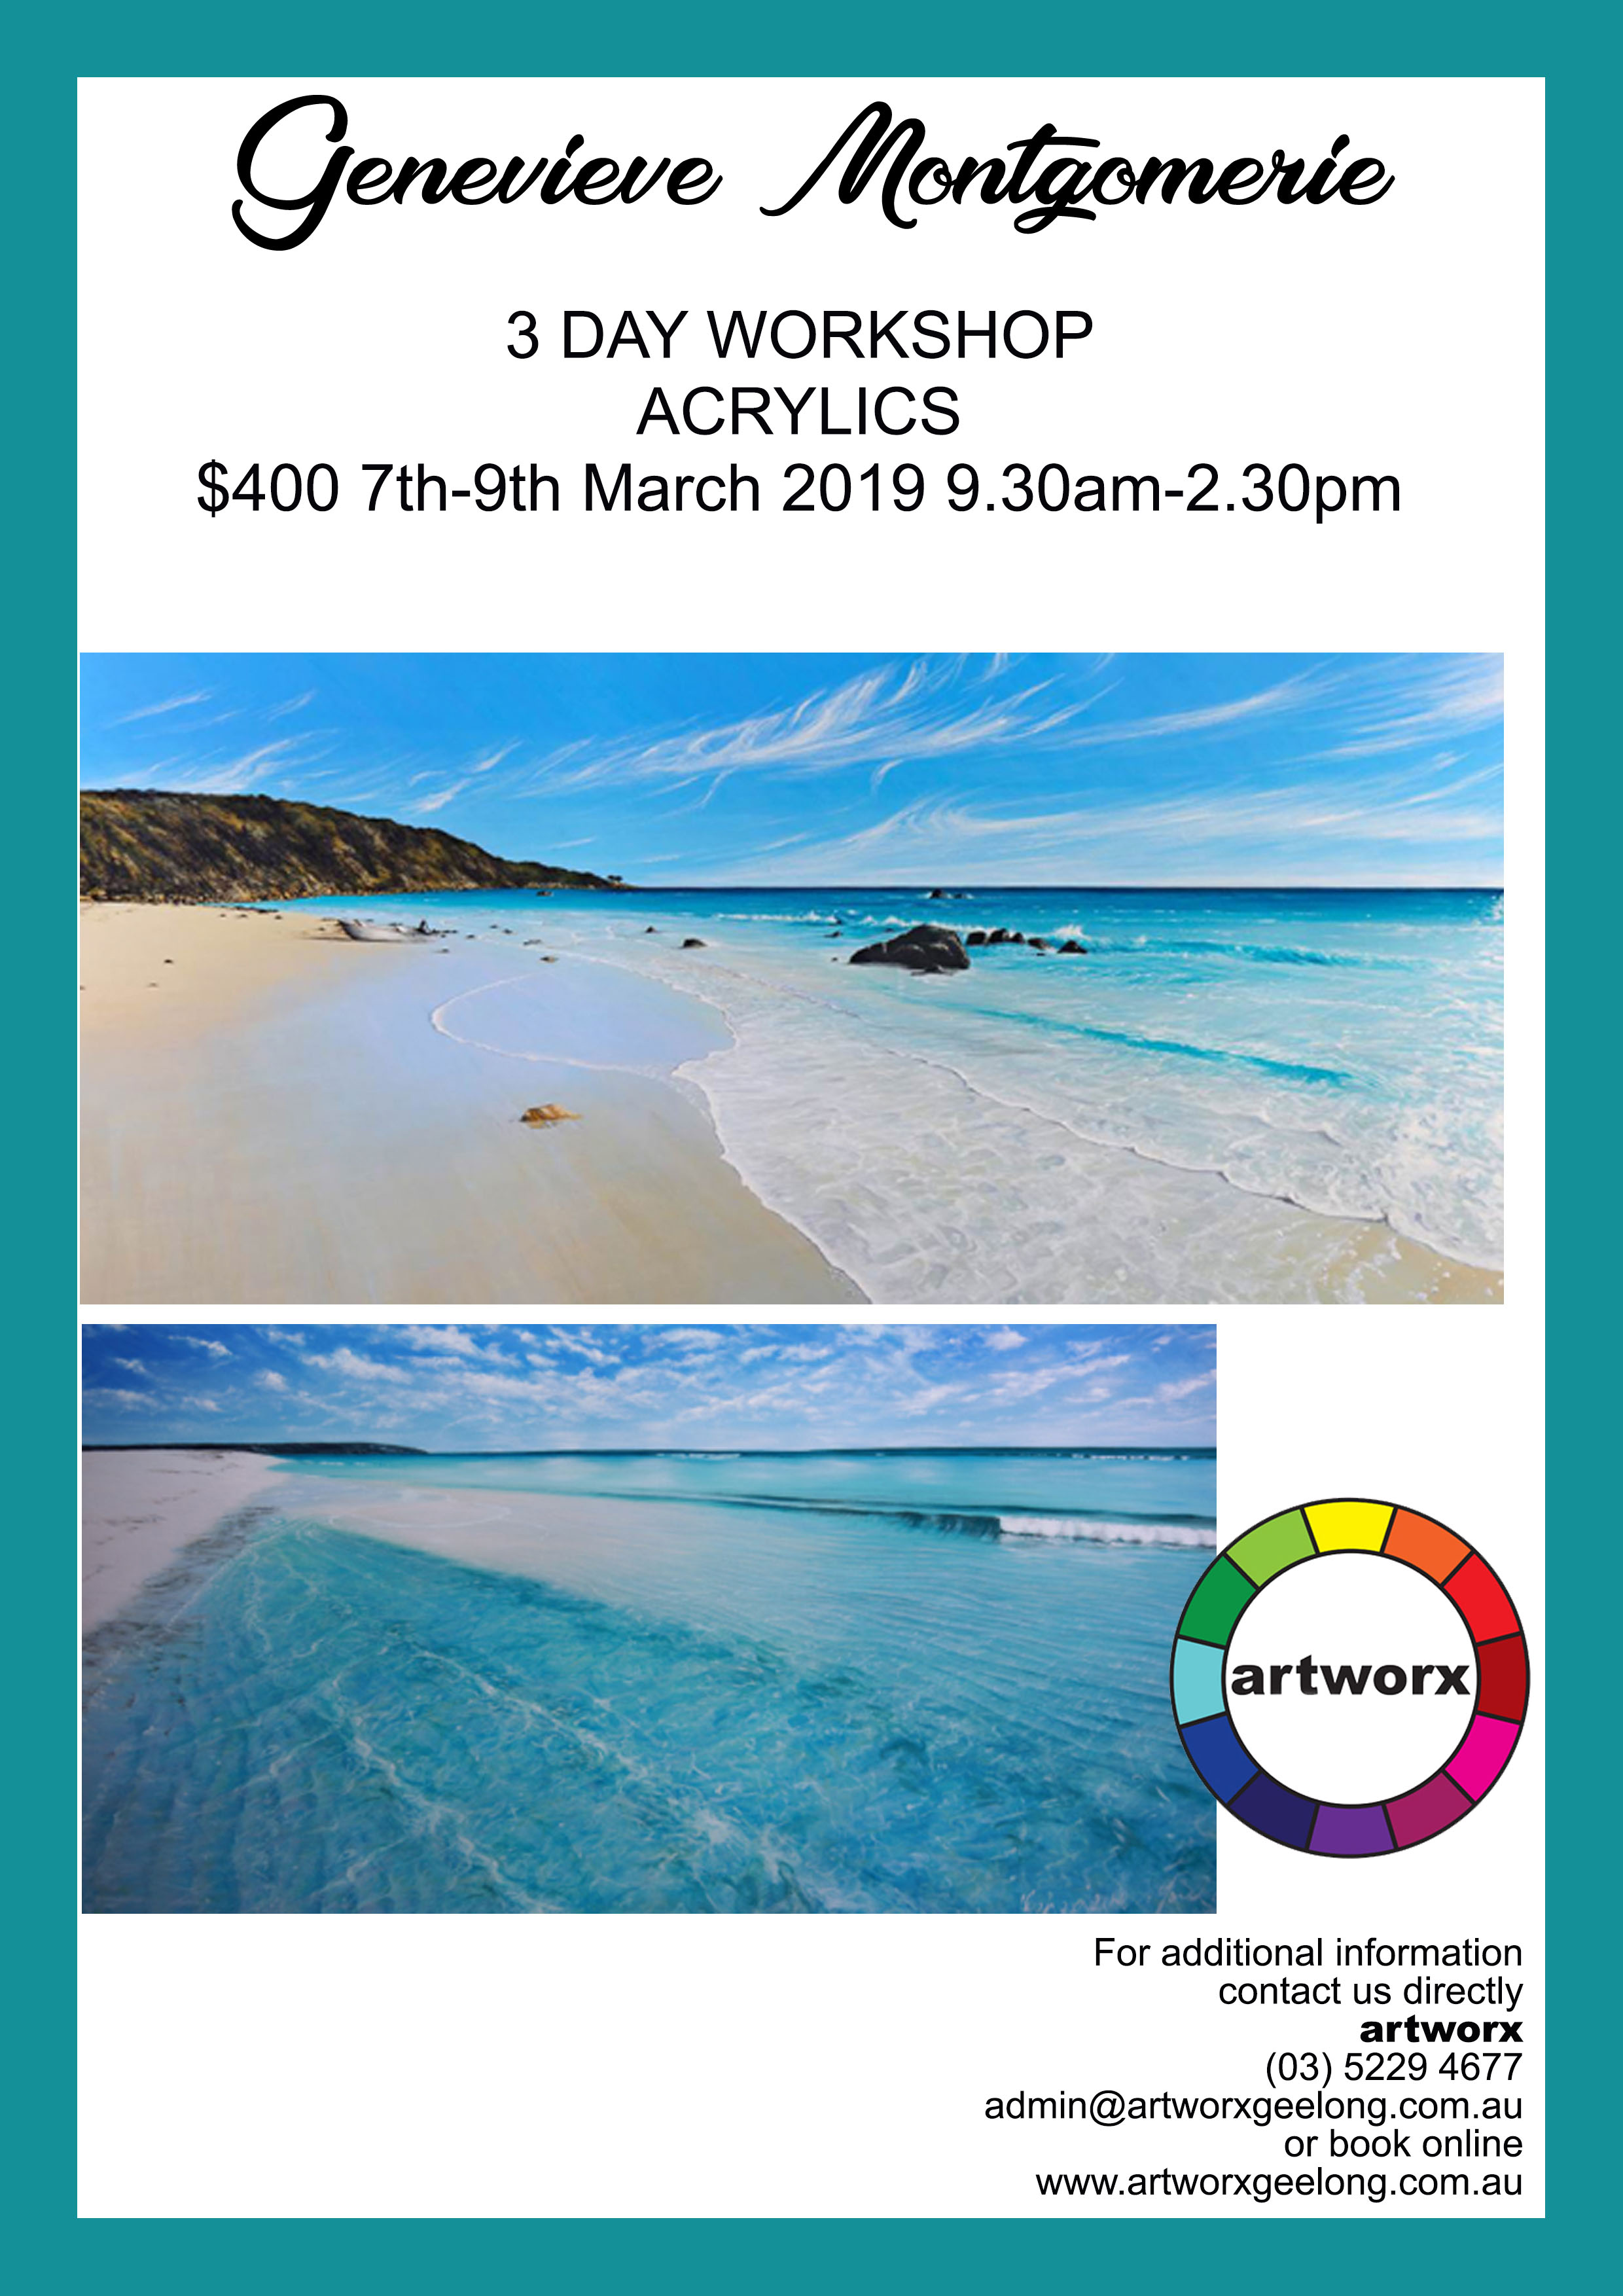 Acrylics - Genevieve Montgomerie 7th-9th March 2019